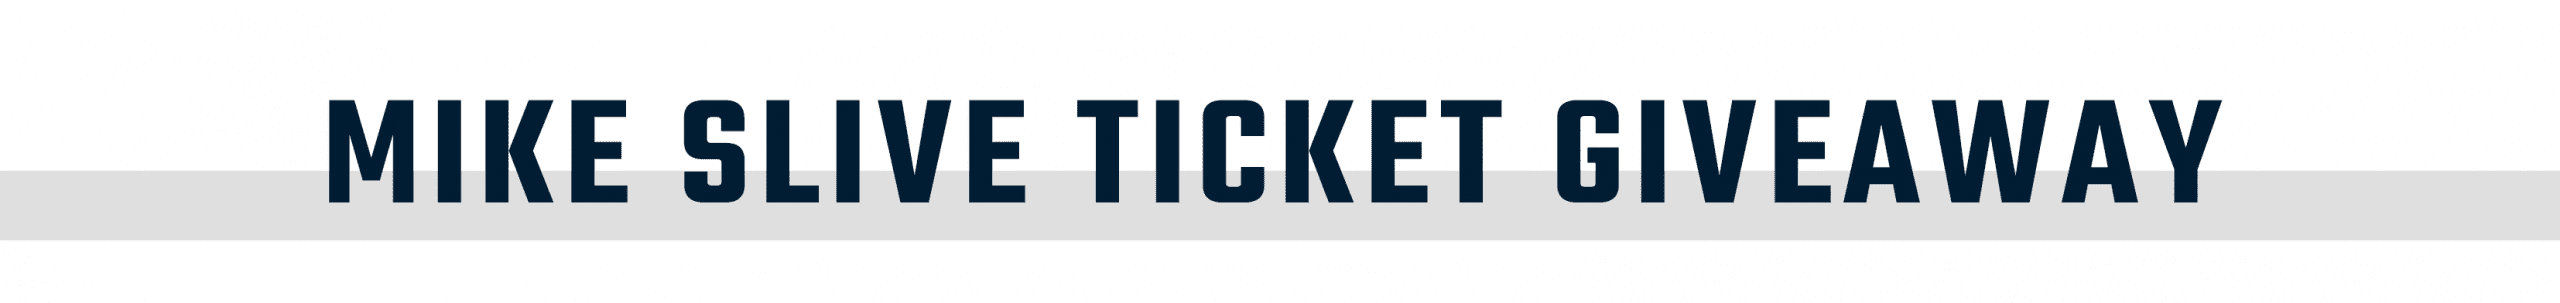 Mike Slive Ticket Giveaway